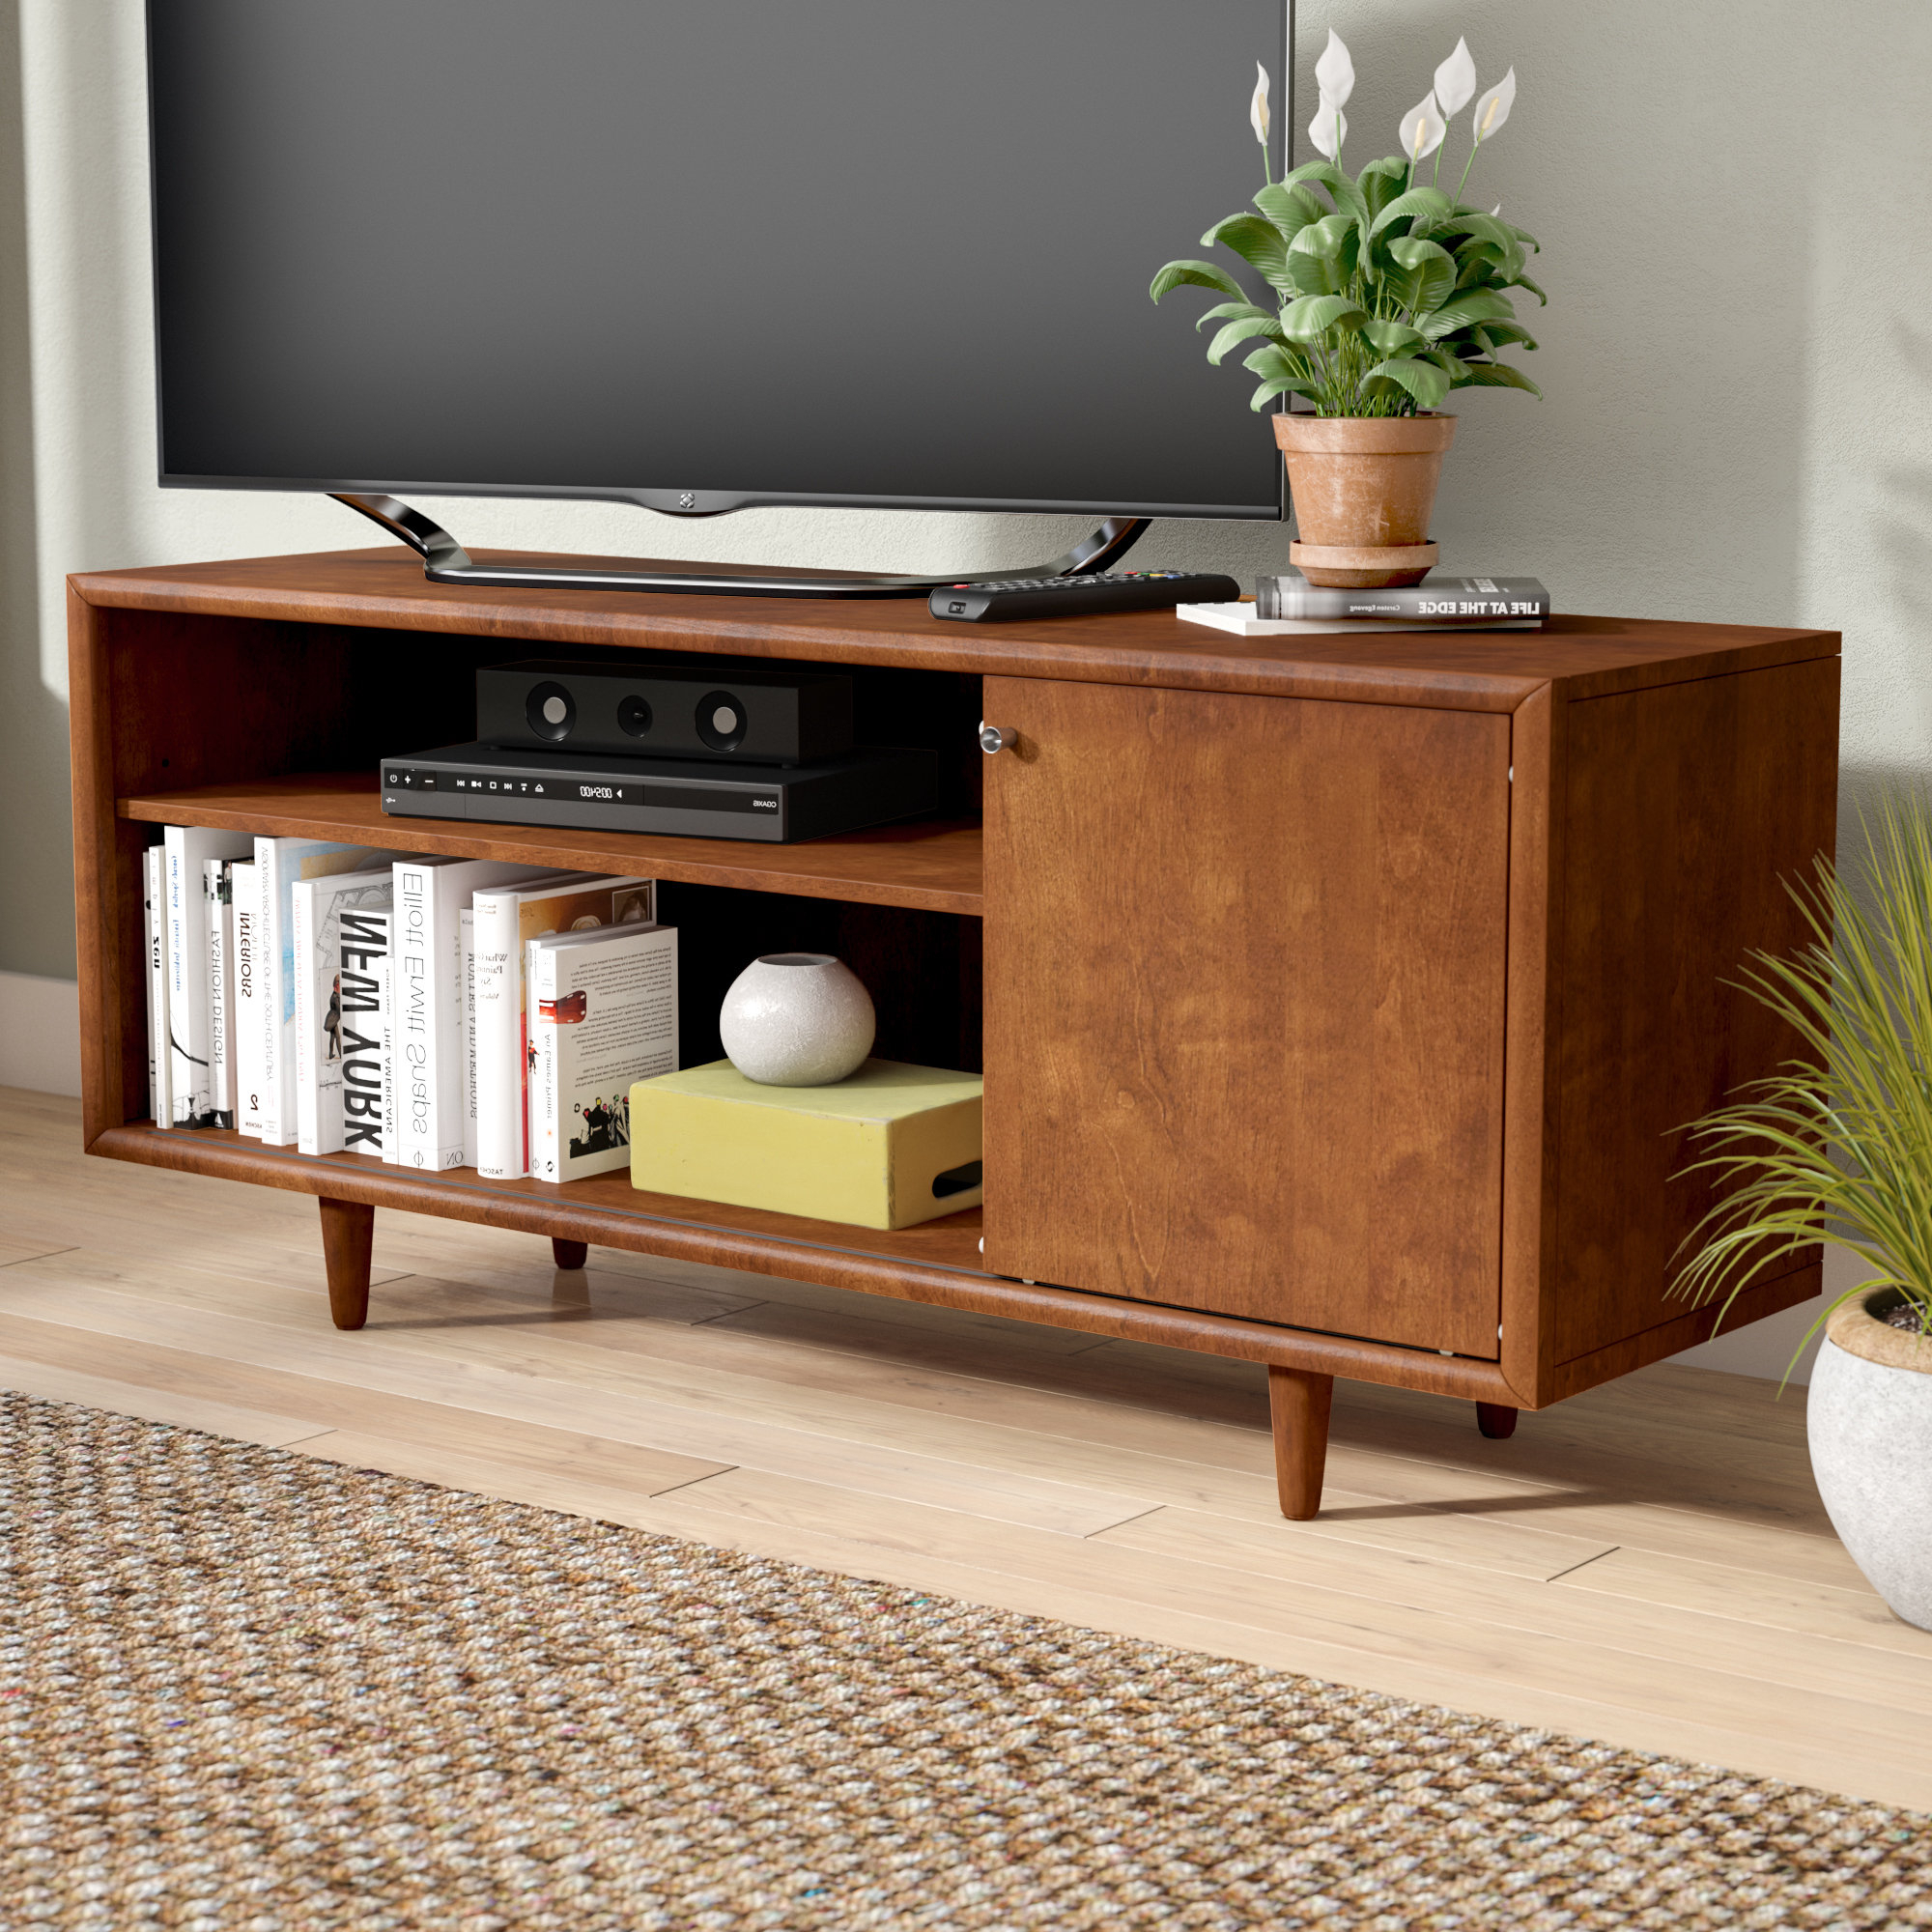 Tv Stand For 75 Inch Tv | Wayfair Pertaining To Century Blue 60 Inch Tv Stands (View 19 of 20)